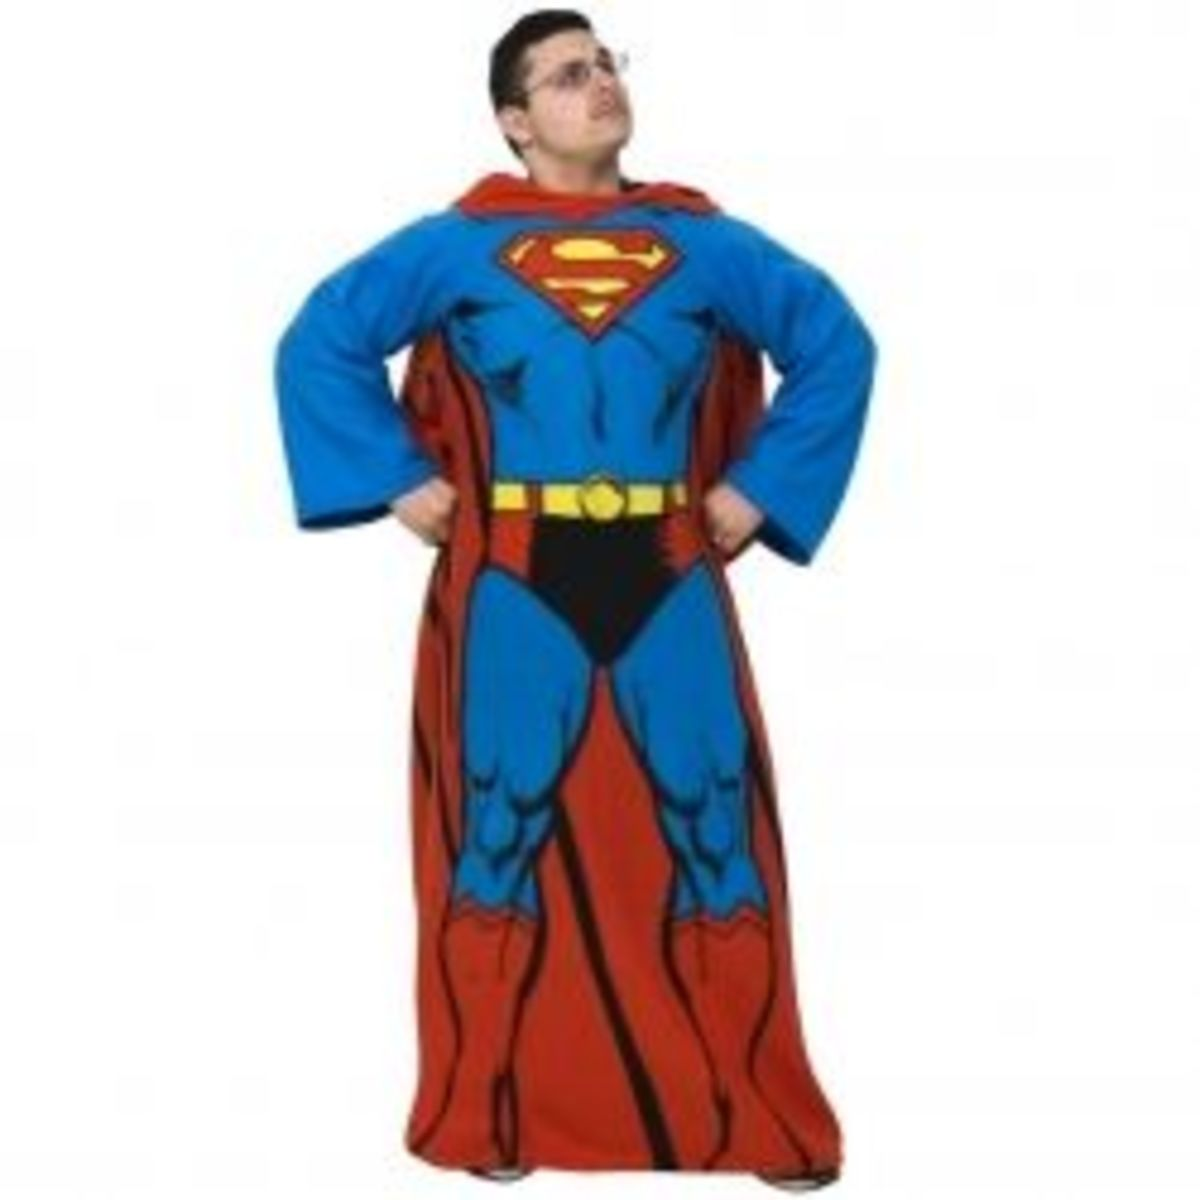 Superman Cozy Fleece Blanket with Sleeves